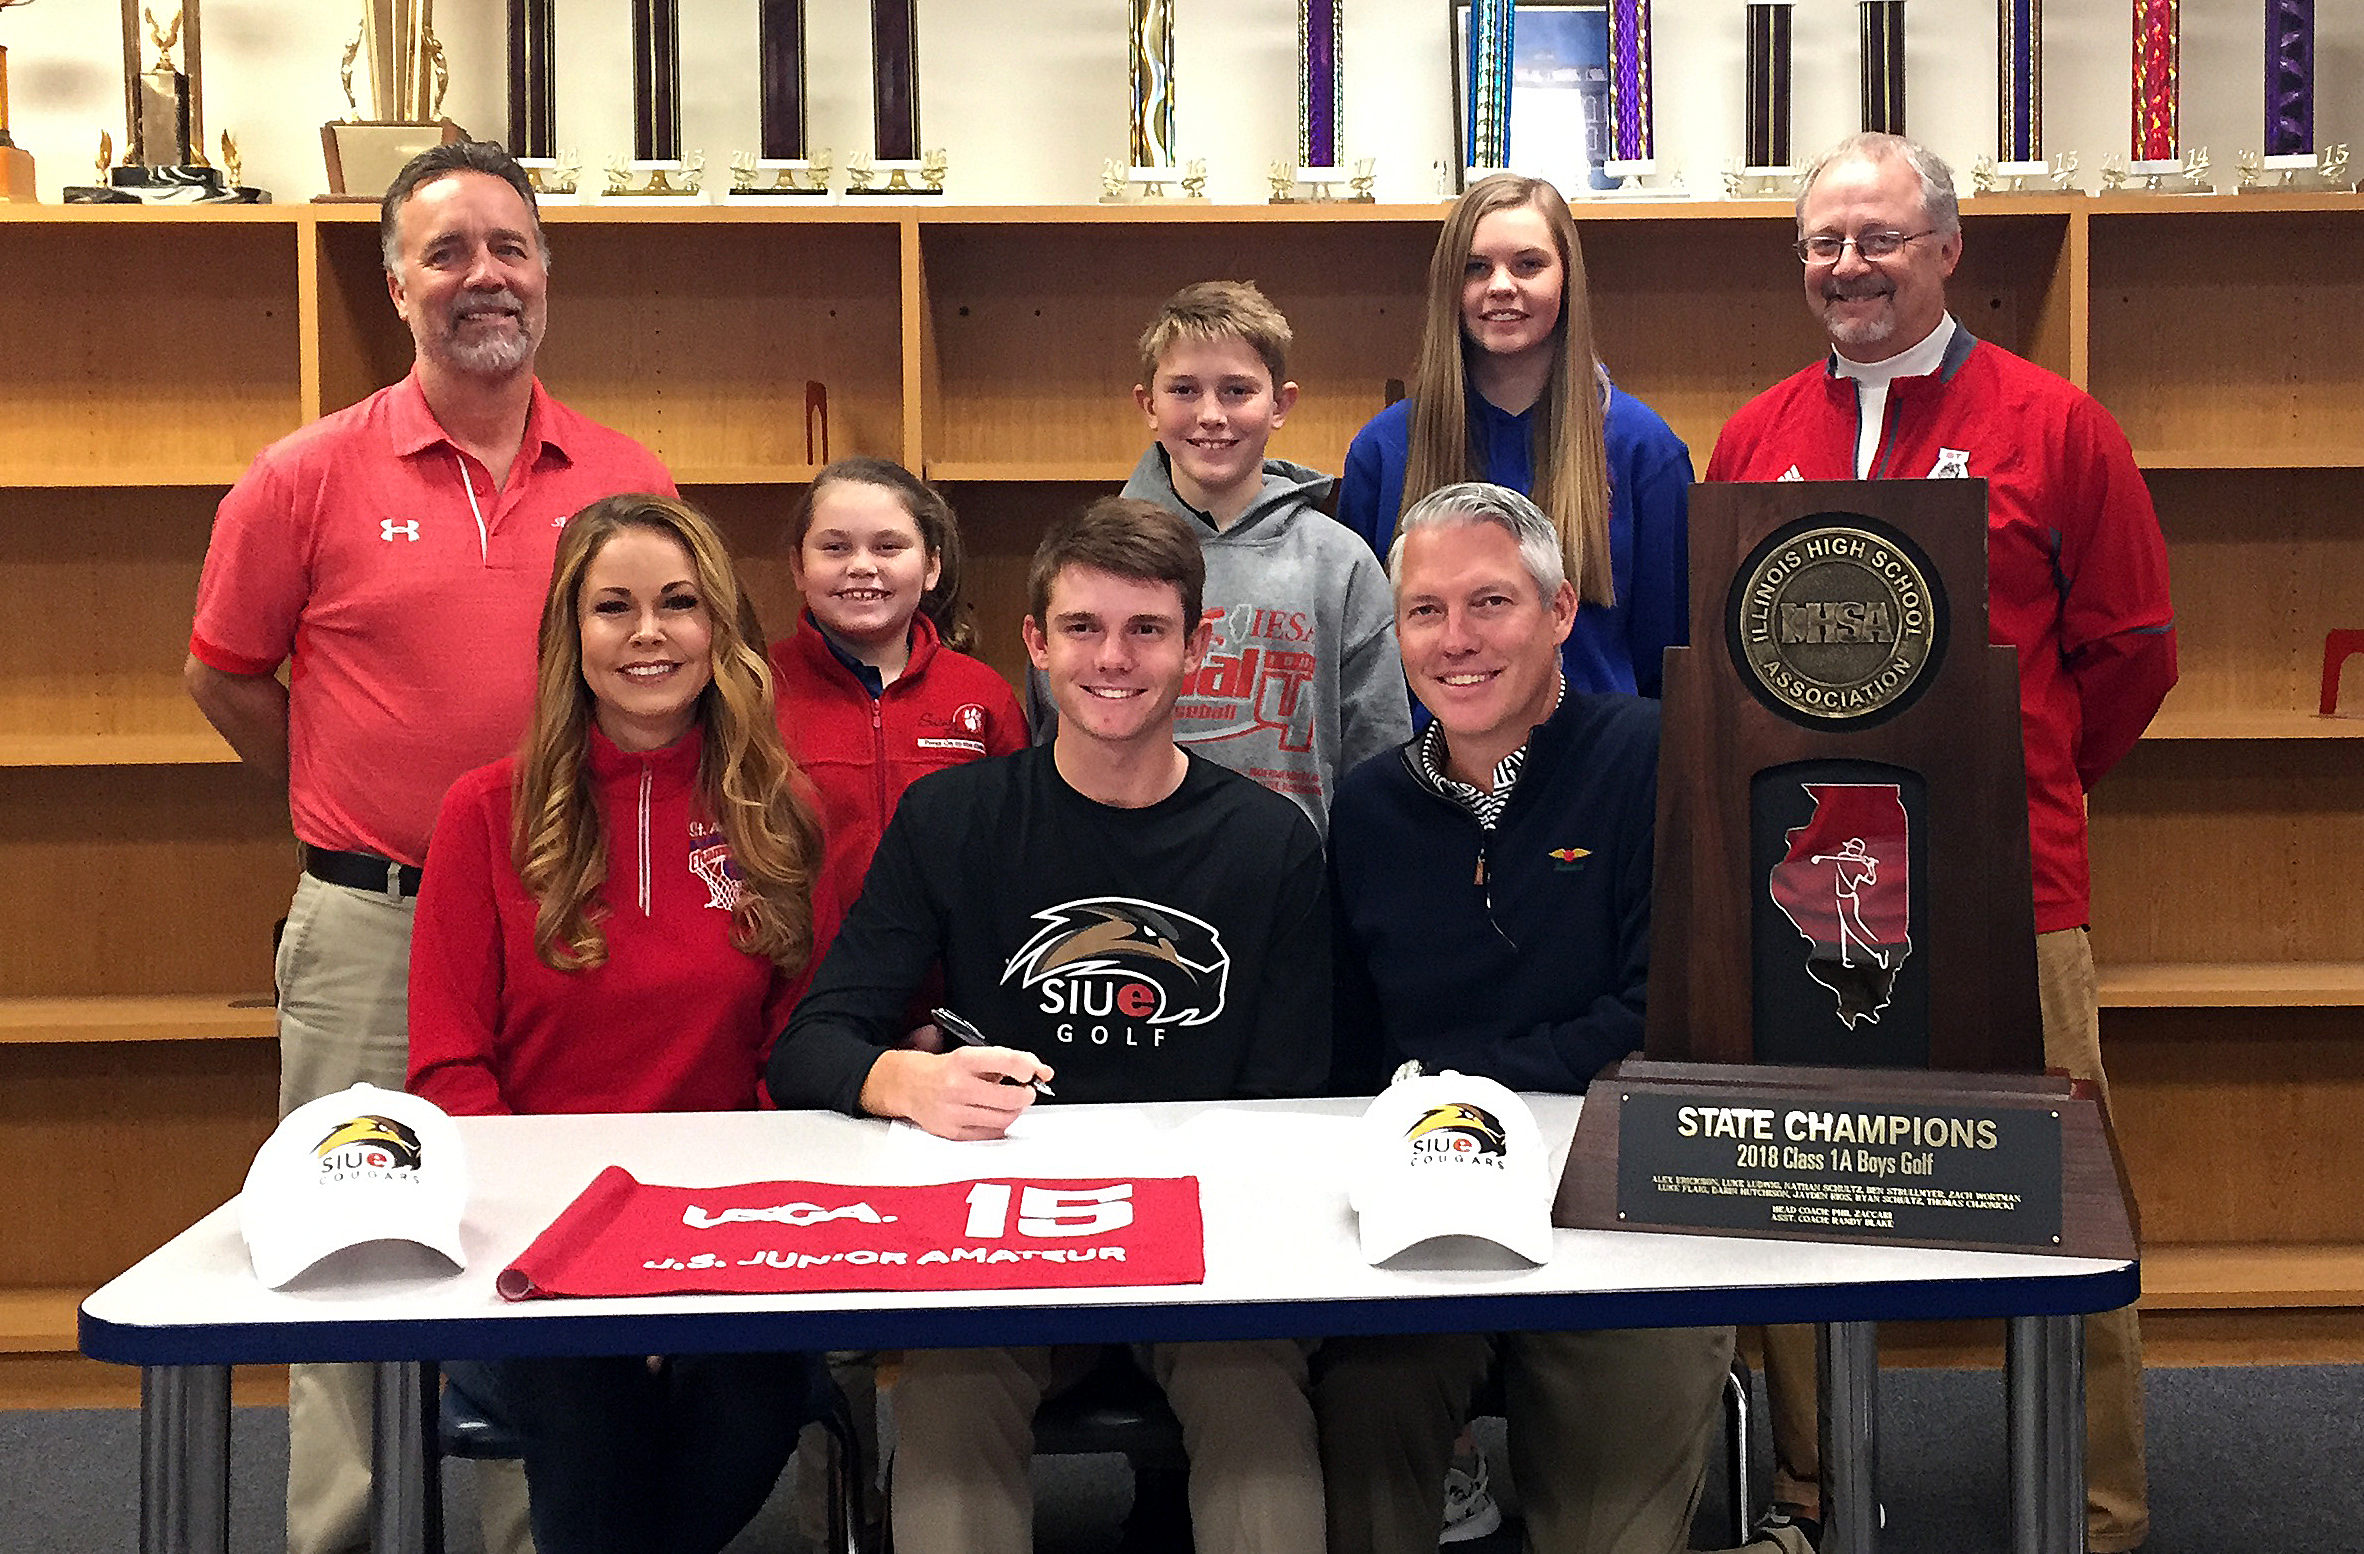 St. Anthony's Luke Ludwig Signs Letter of Intent to Play Golf at SIU-E